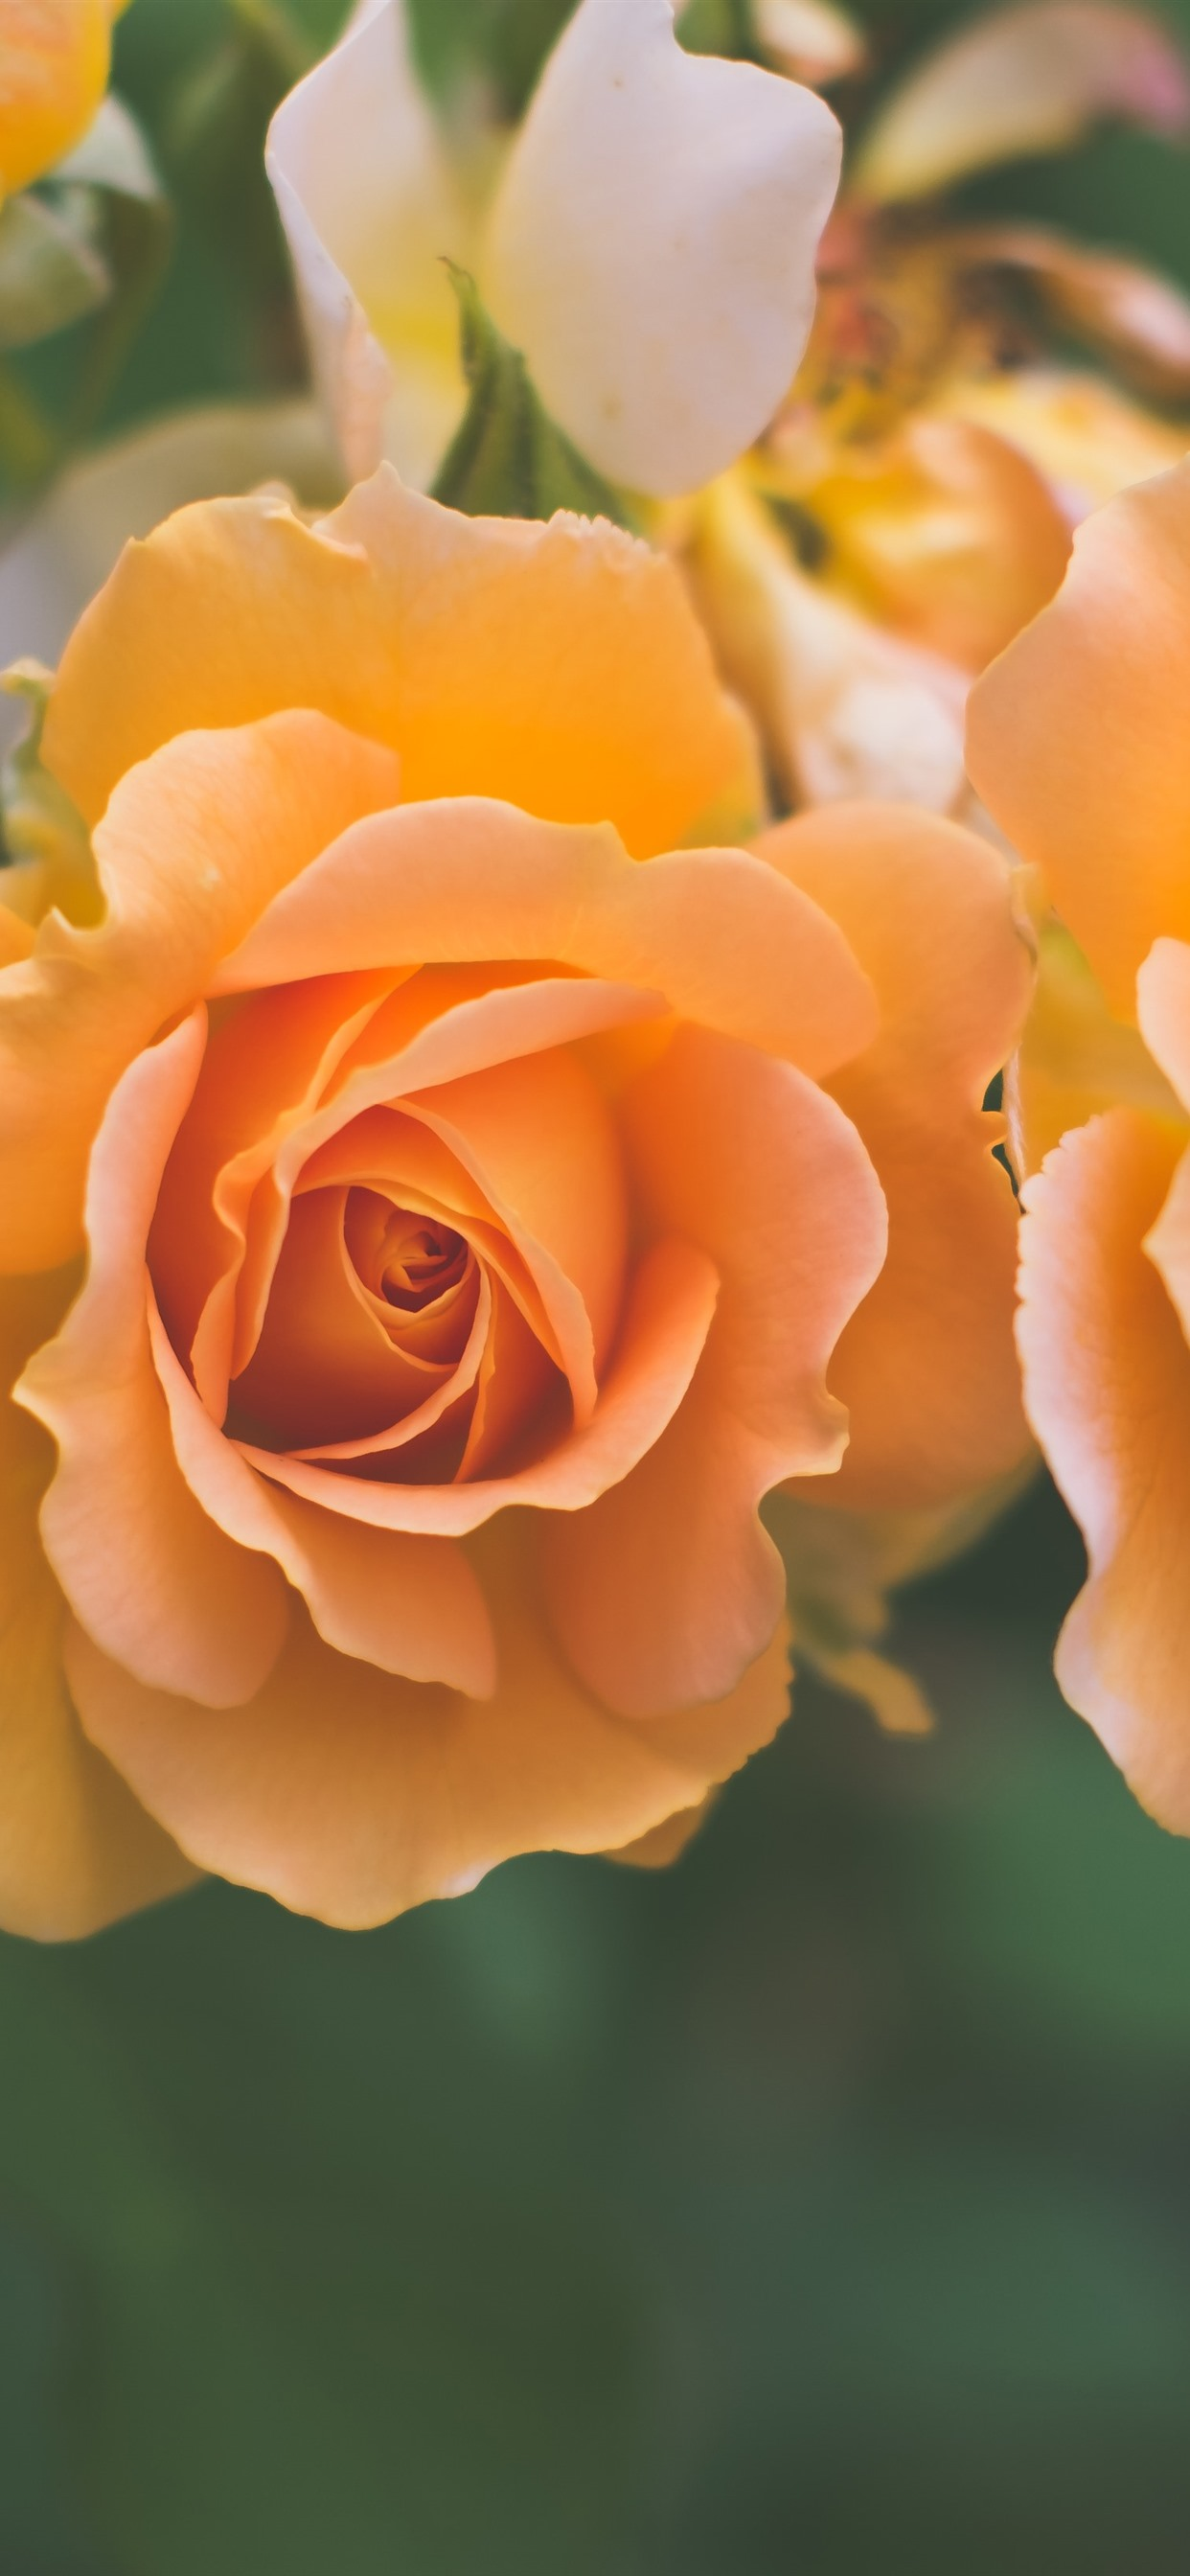 Orange Roses Close Up Hazy Background 1242x2688 Iphone 11 Pro Xs Max Wallpaper Background Picture Image